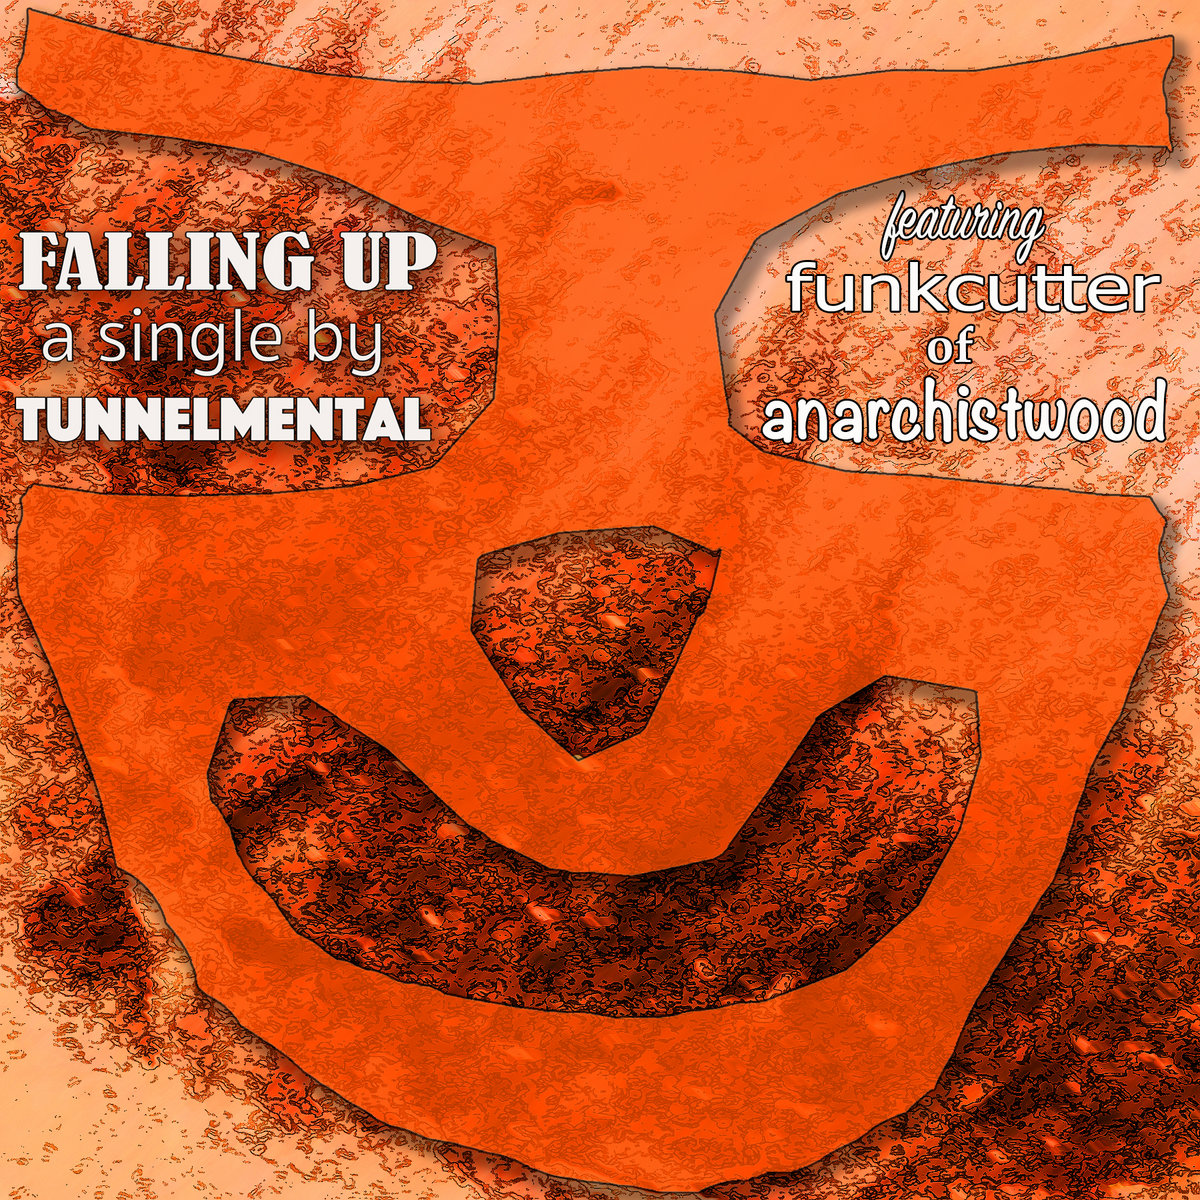 Falling Up (featuring funkcutter of anarchistwood) by tunnelmental experimental assembly